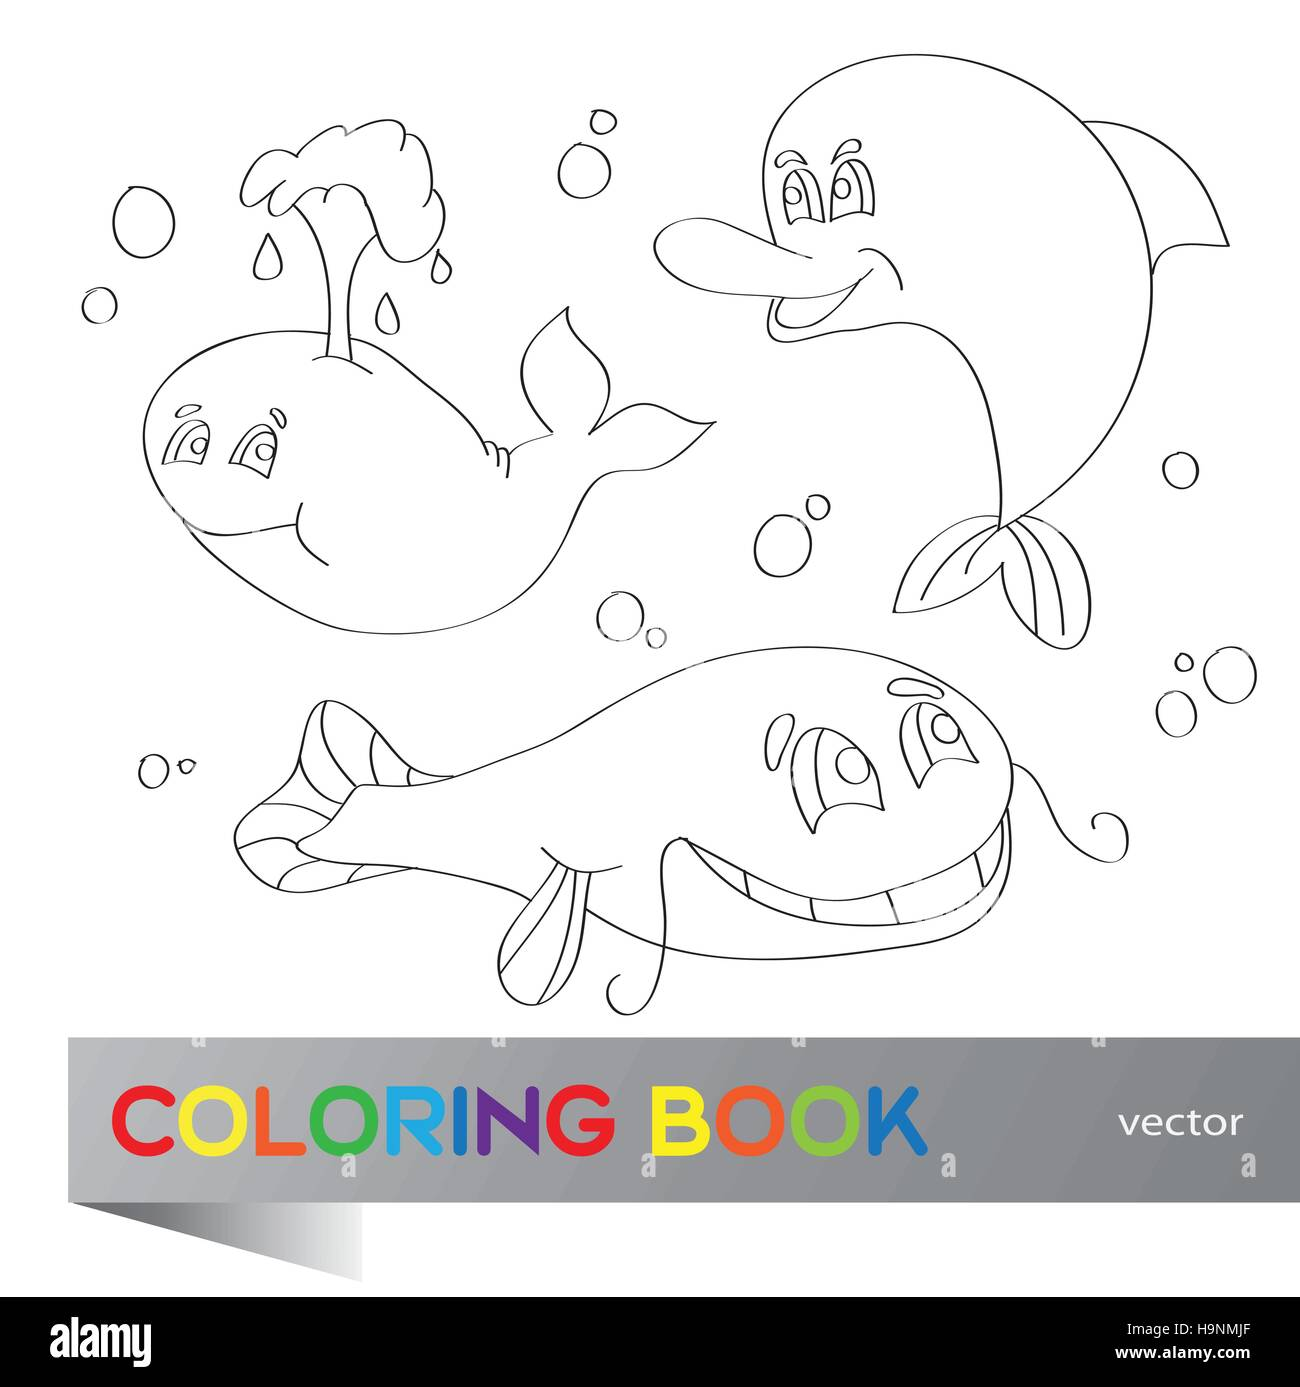 Coloring book - set of images of the marine life - Stock Image